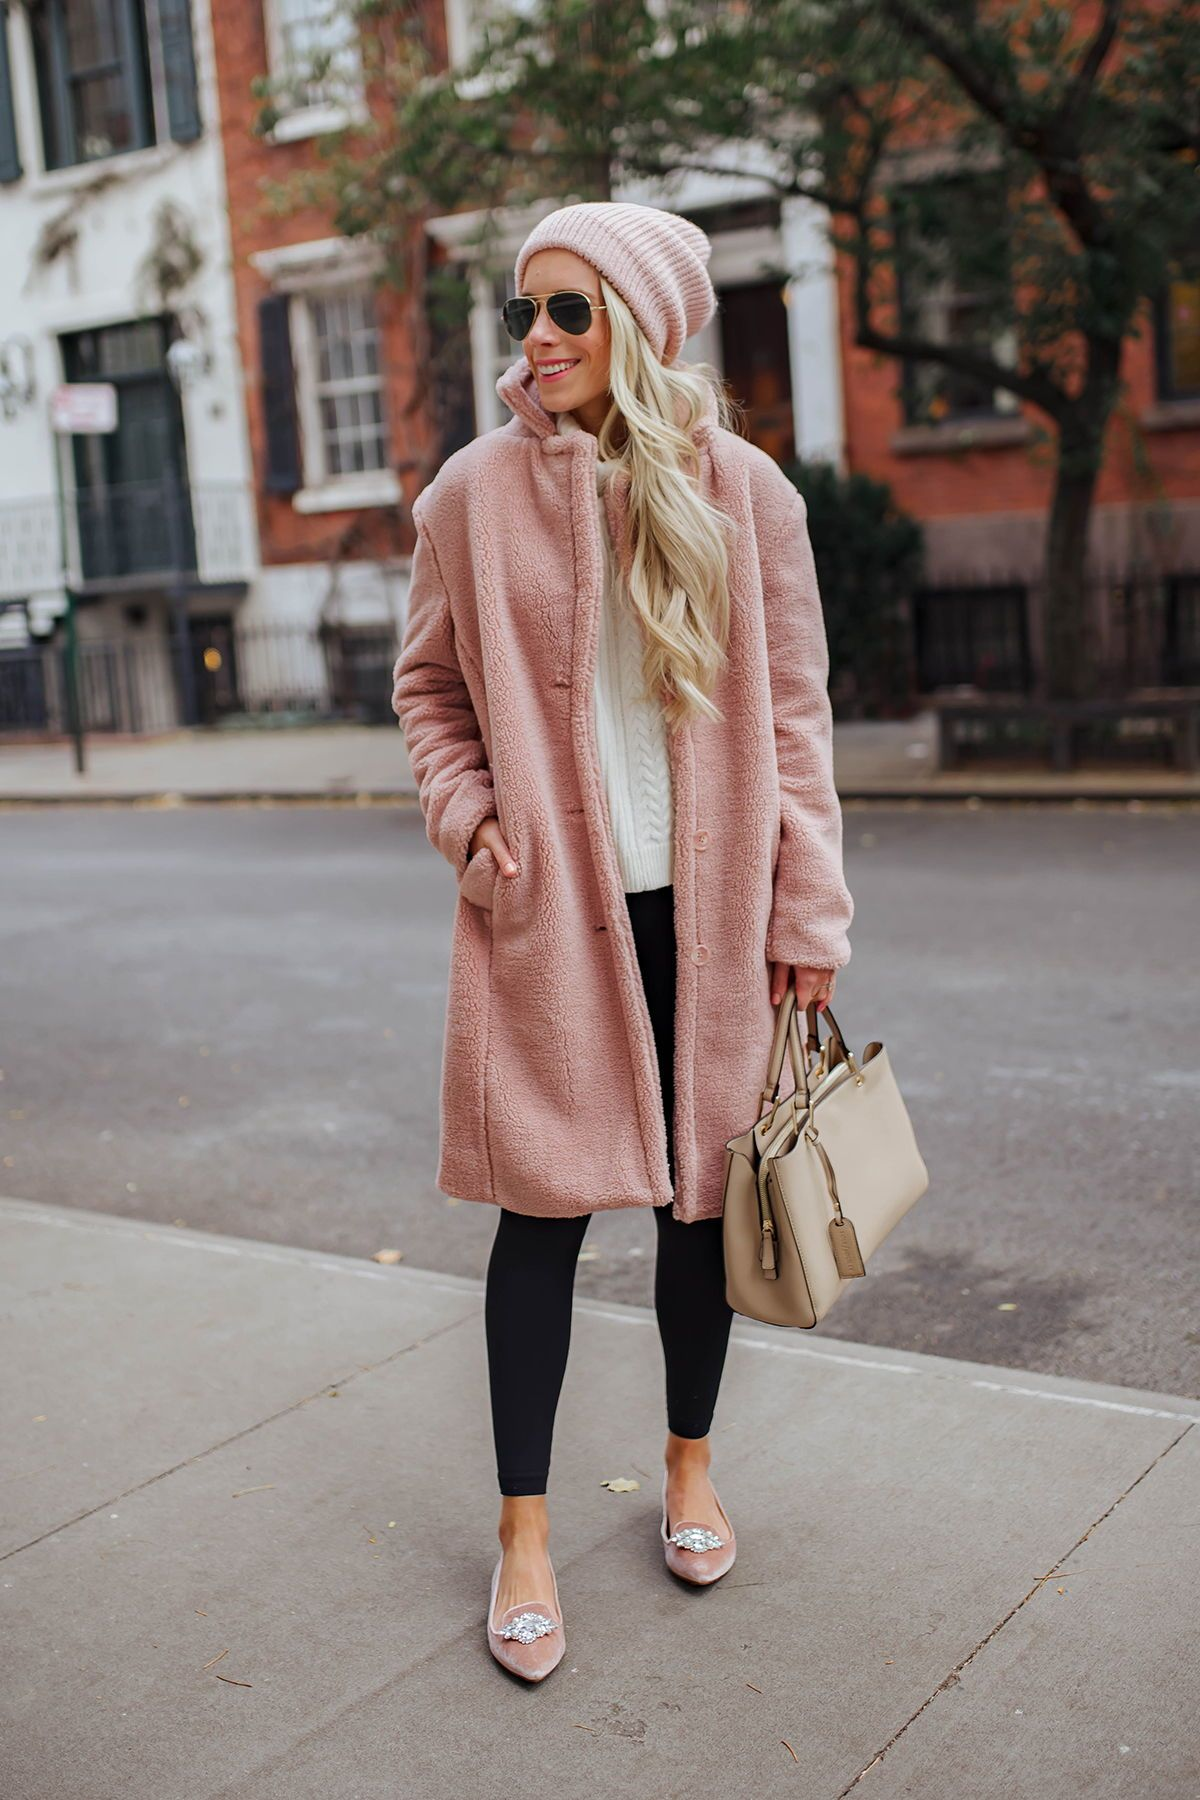 Katie S Bliss New York City Fashion Blogger Nyc Blog Pink Coat Outfit Coat Outfit Casual Pink Winter Coat [ 1800 x 1200 Pixel ]